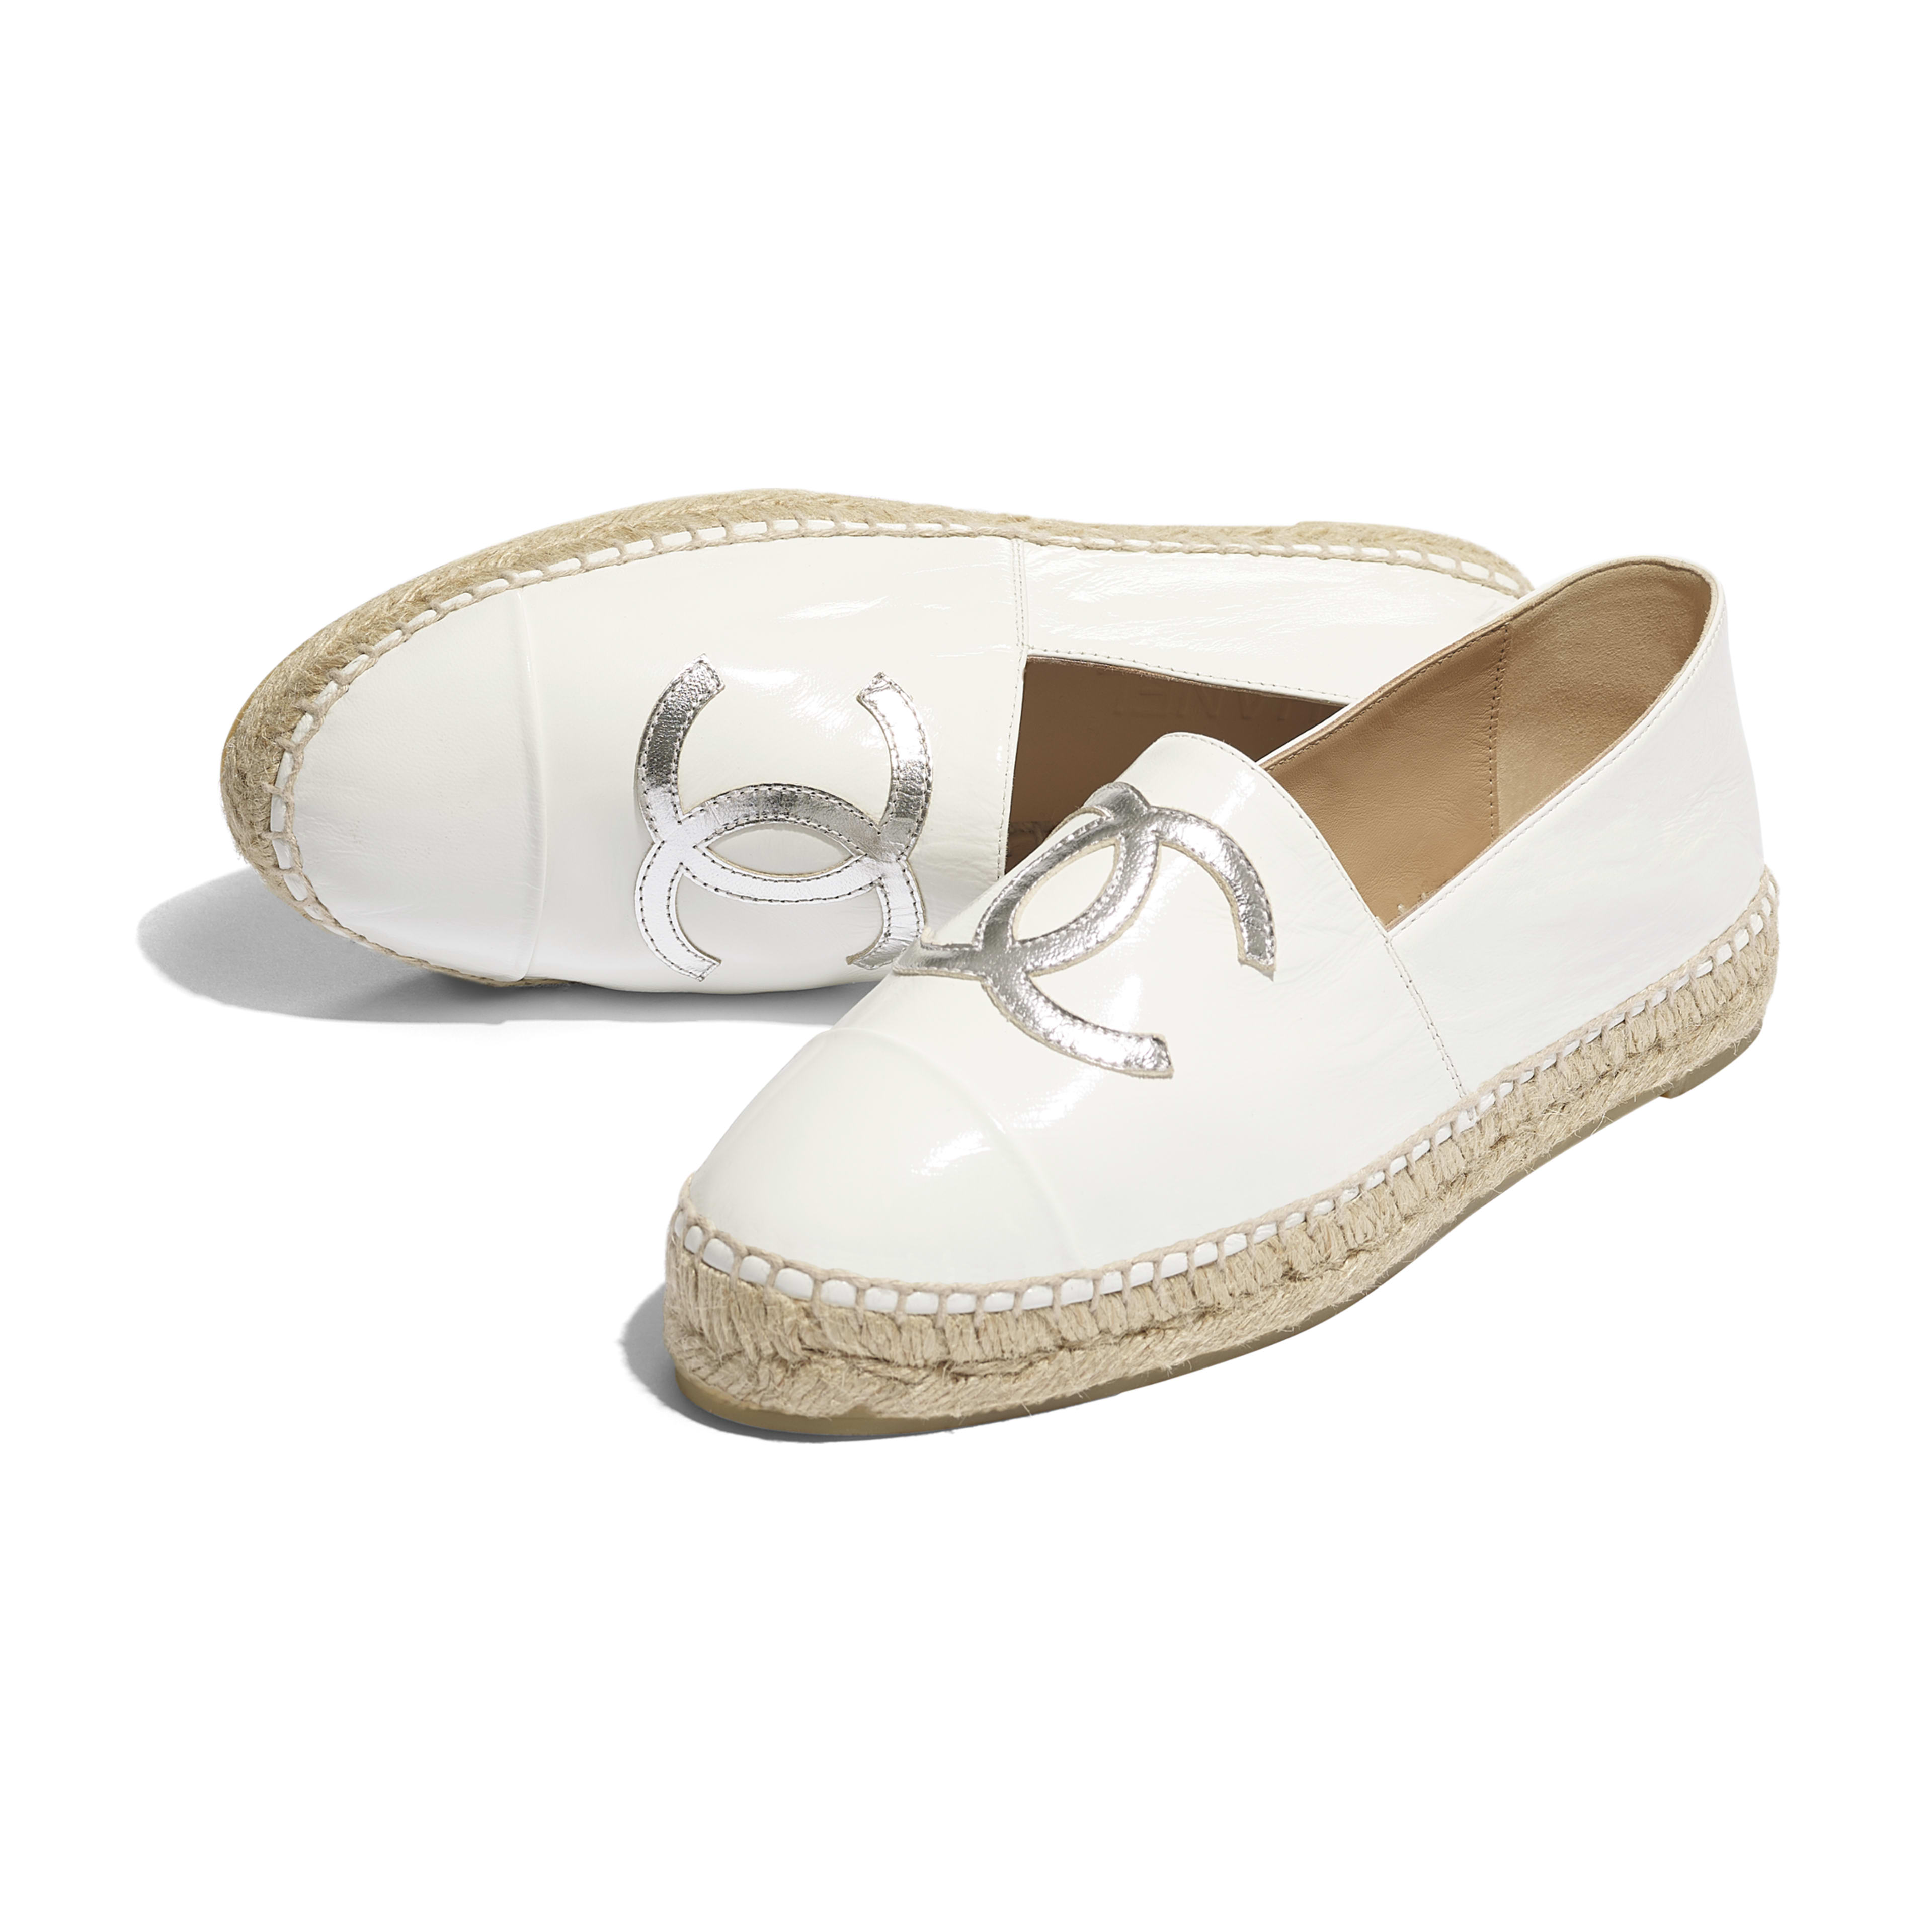 Chanel Espadrilles Review for 2020: Don